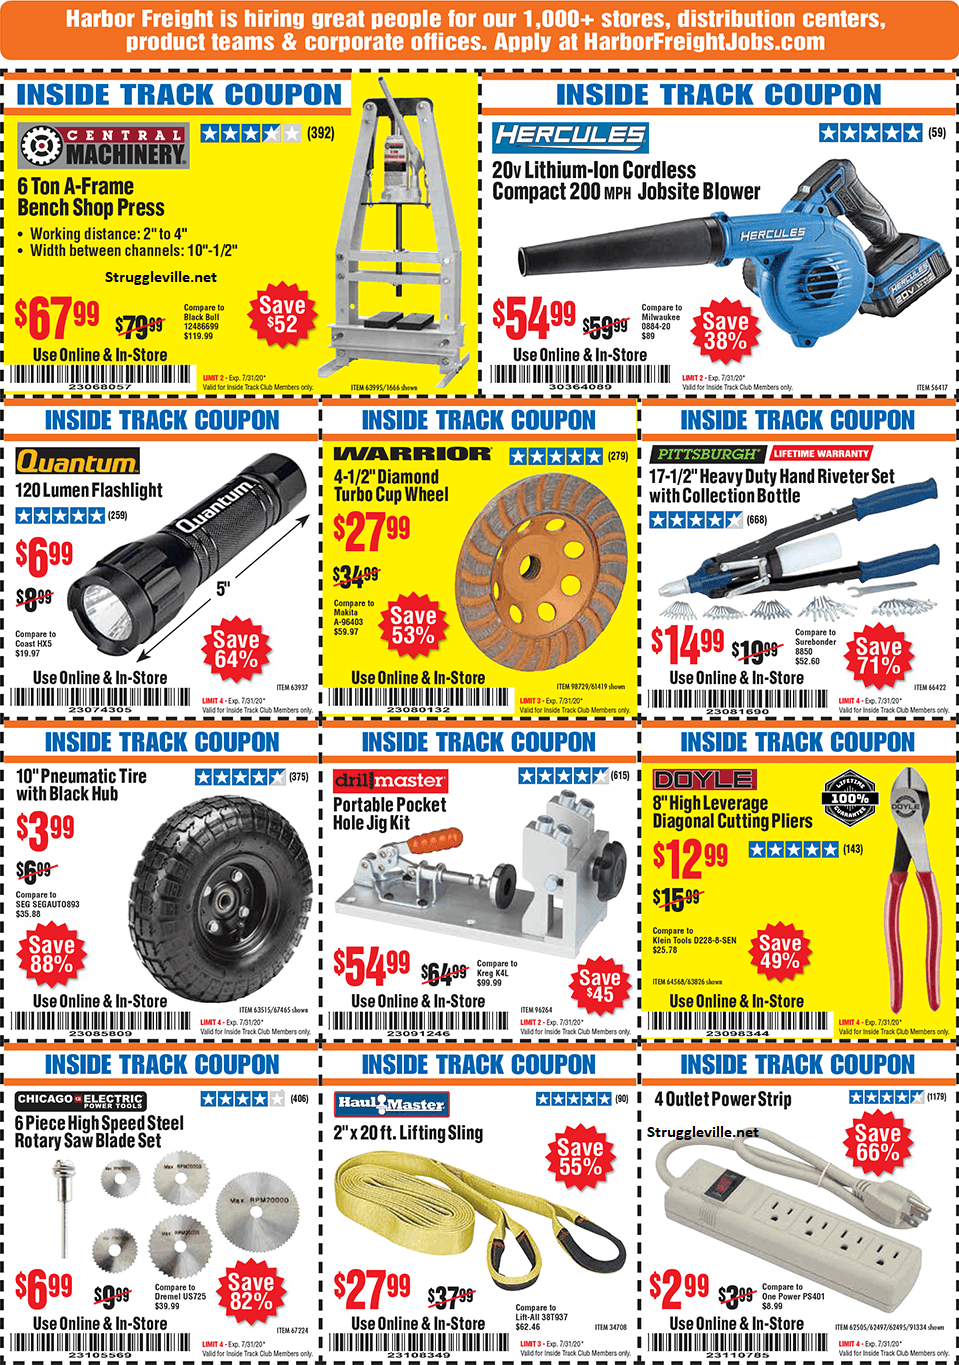 Harbor Freight Inside Track Club Coupons July 2020